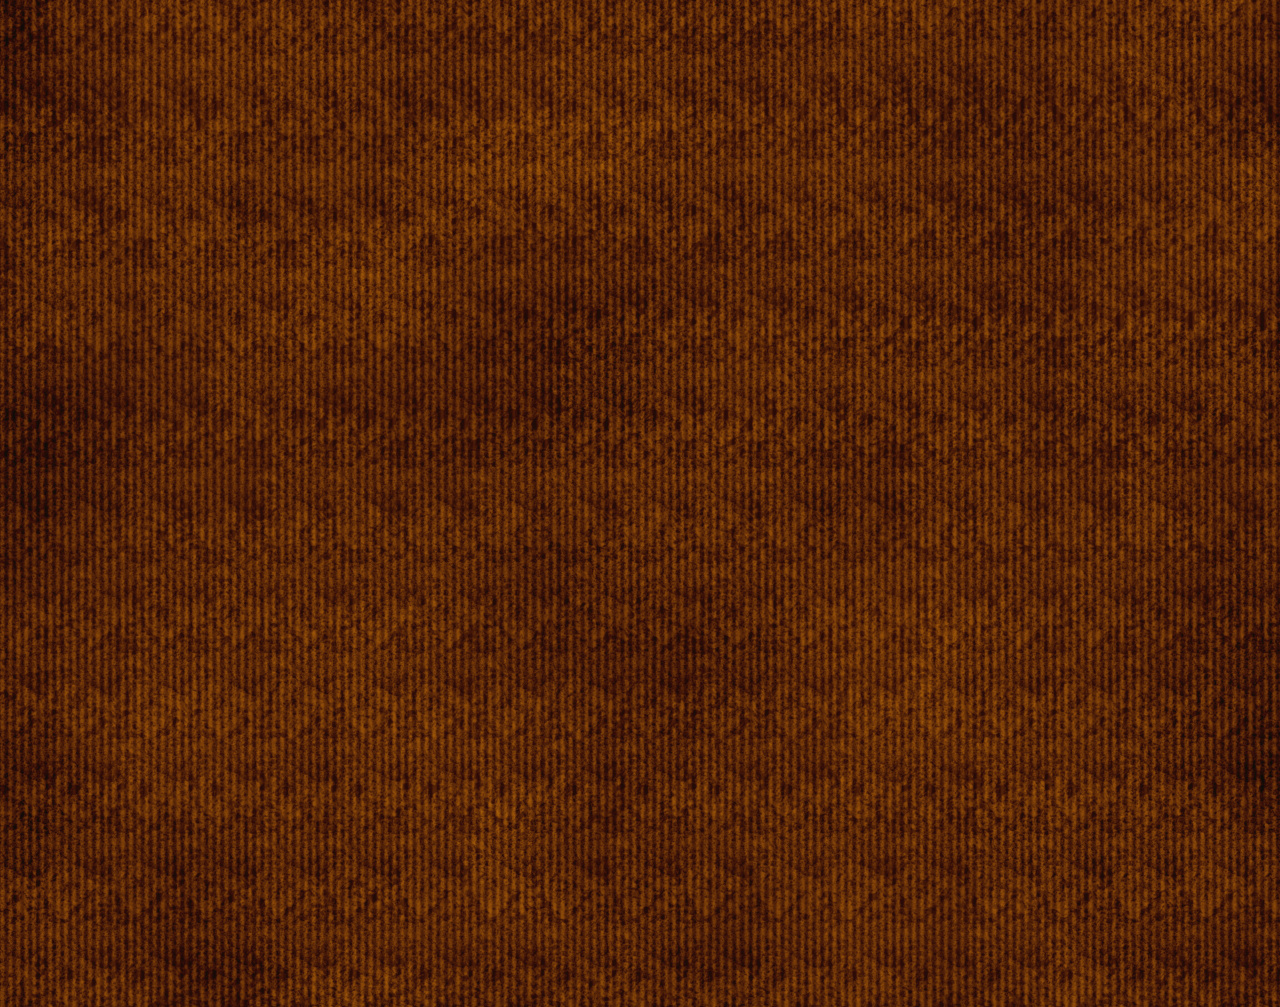 Brown Canvas 1 Backgrounds